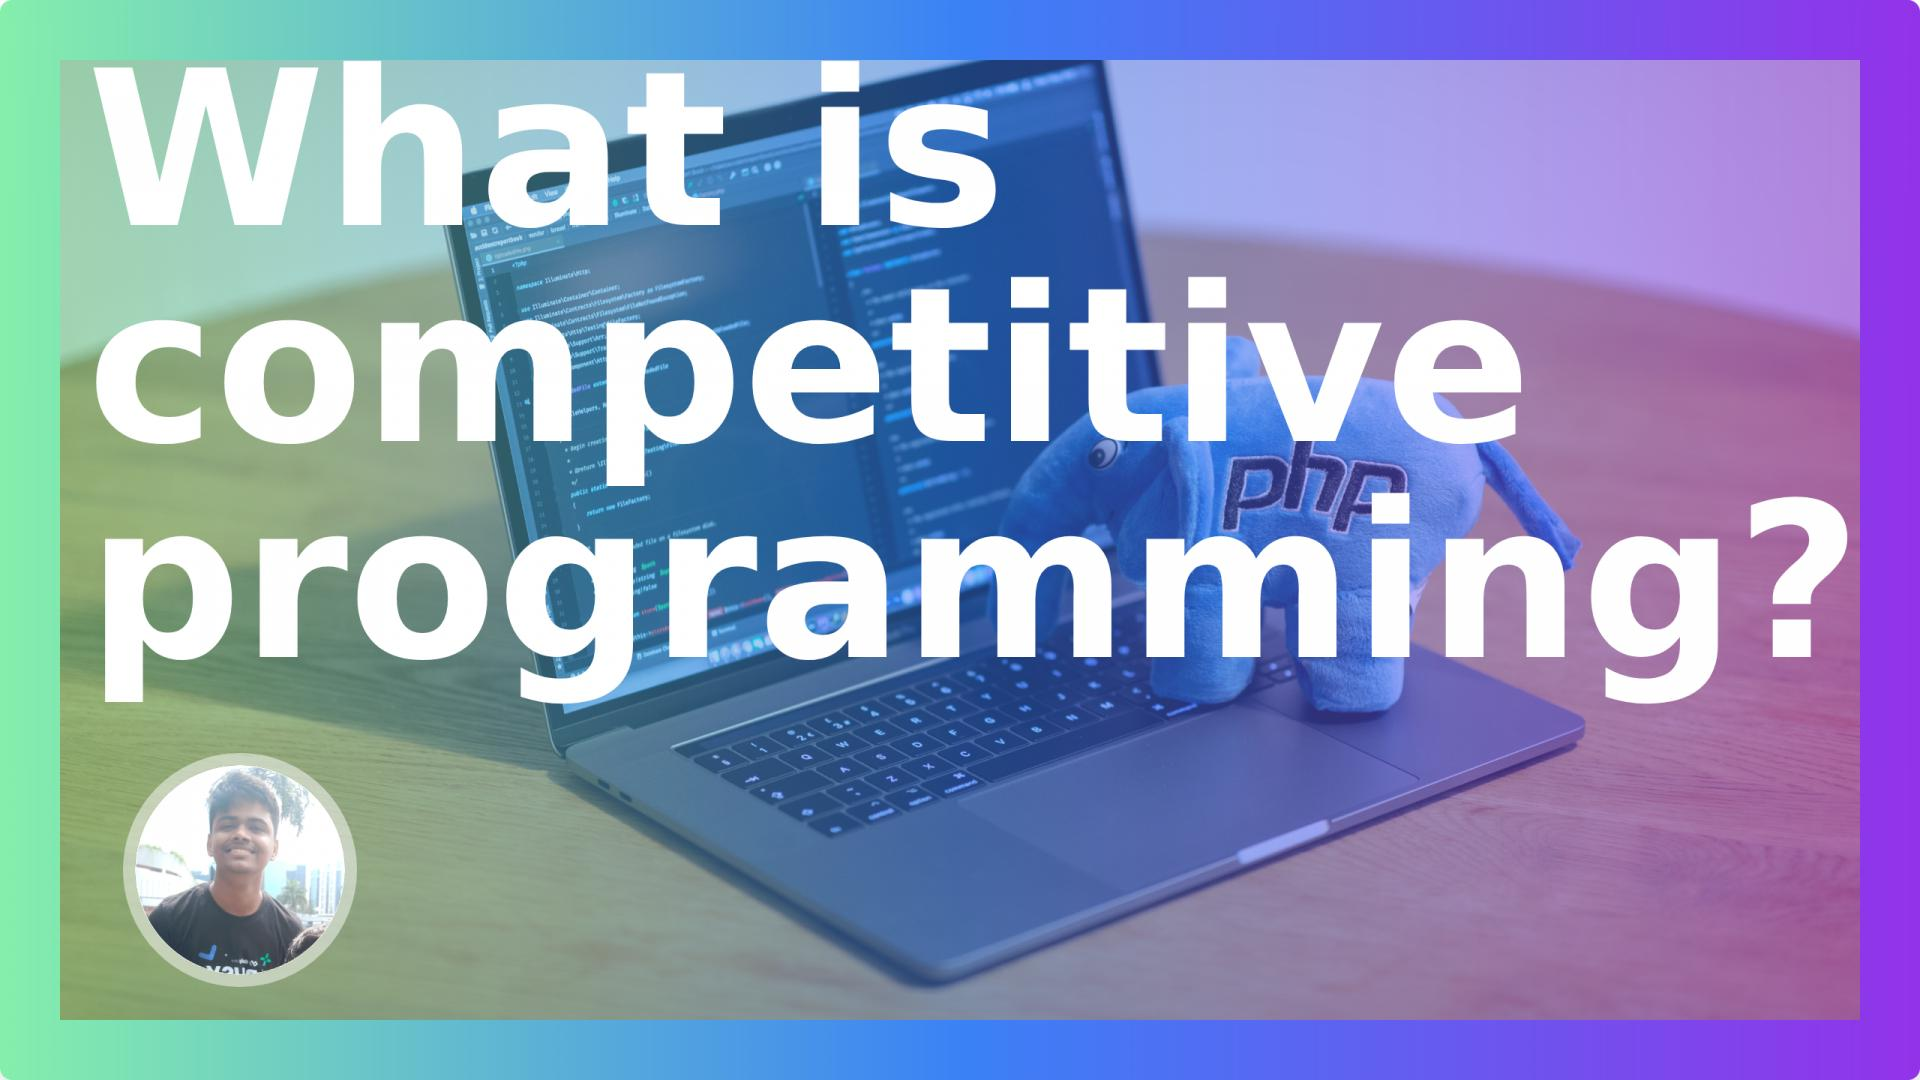 What is competitive programming?